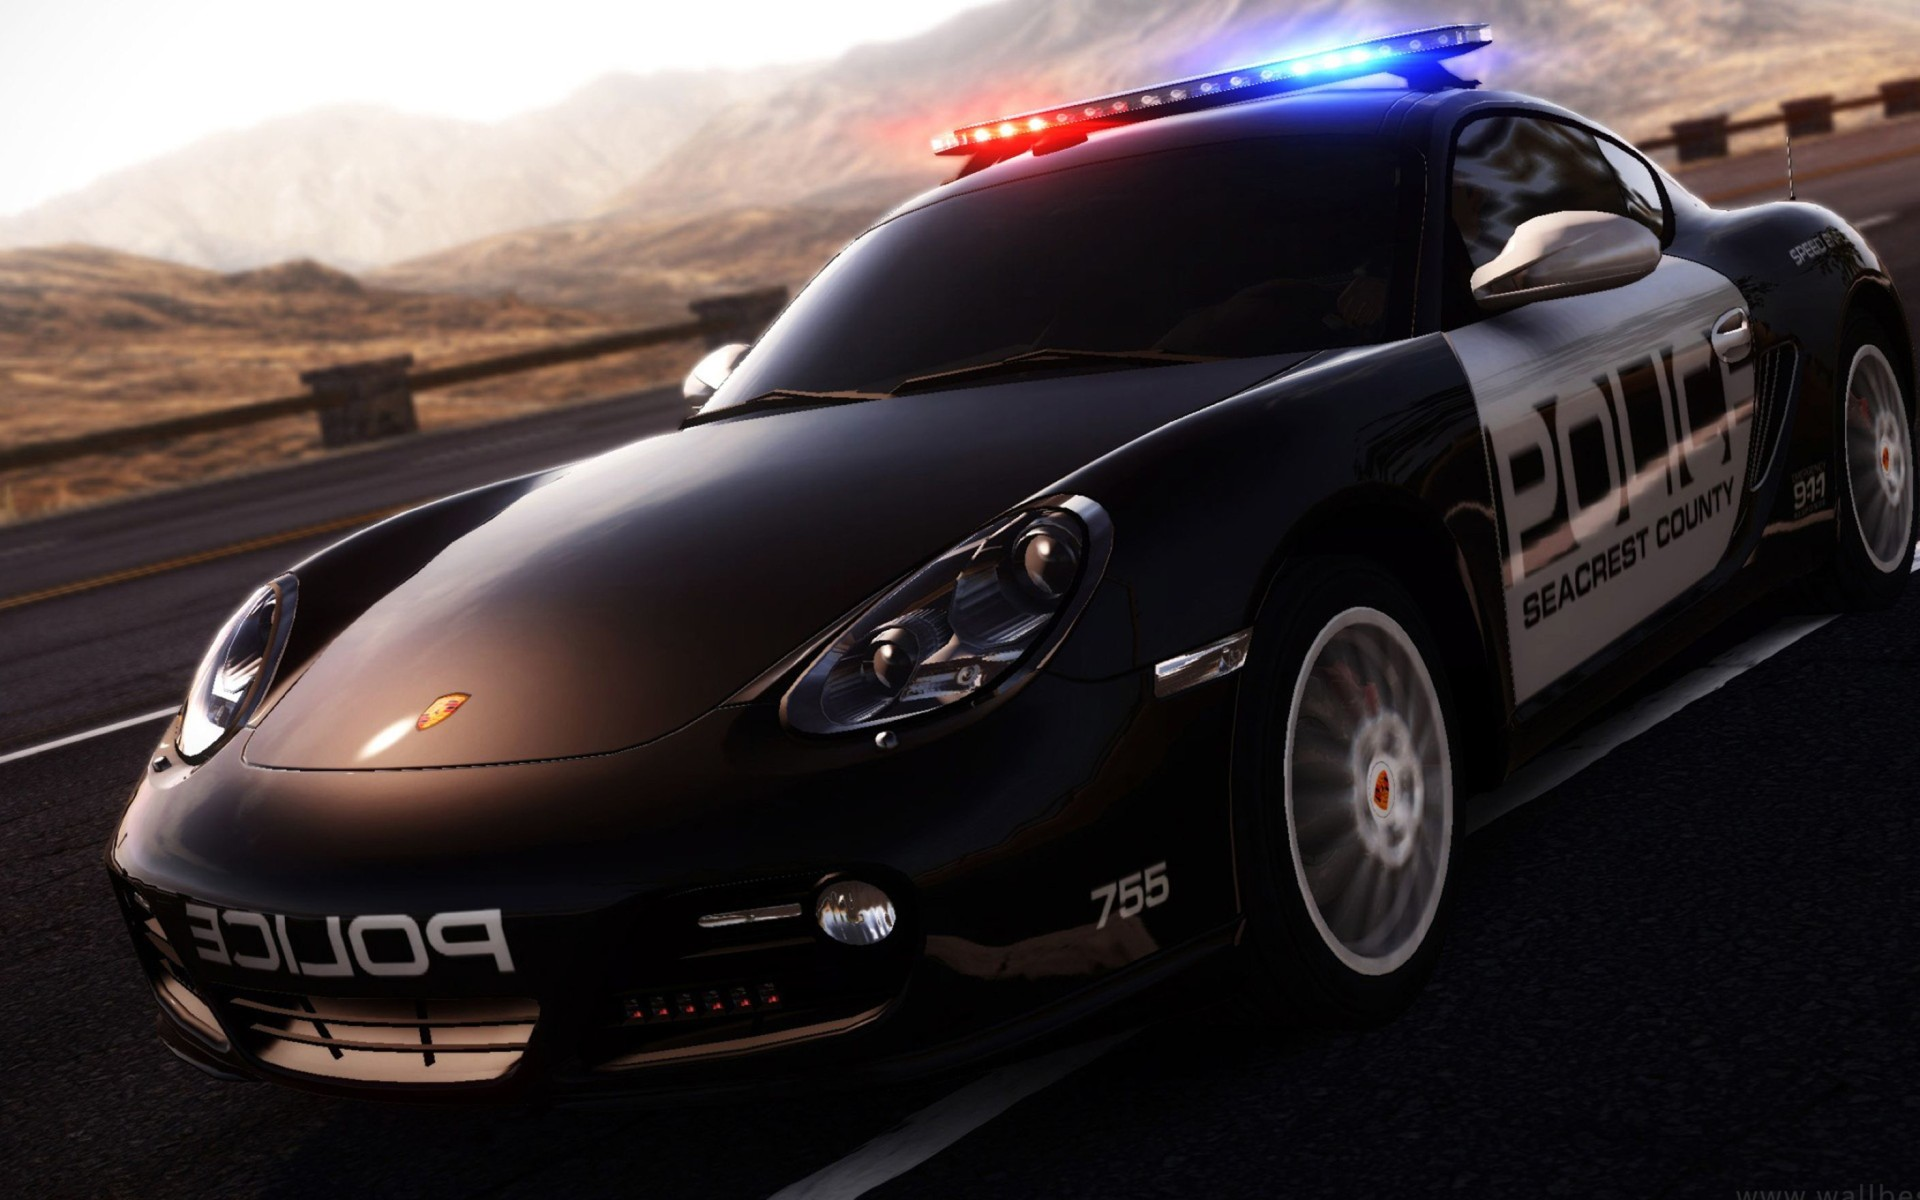 3D Police Car Desktop Backgrounds Wallpaper